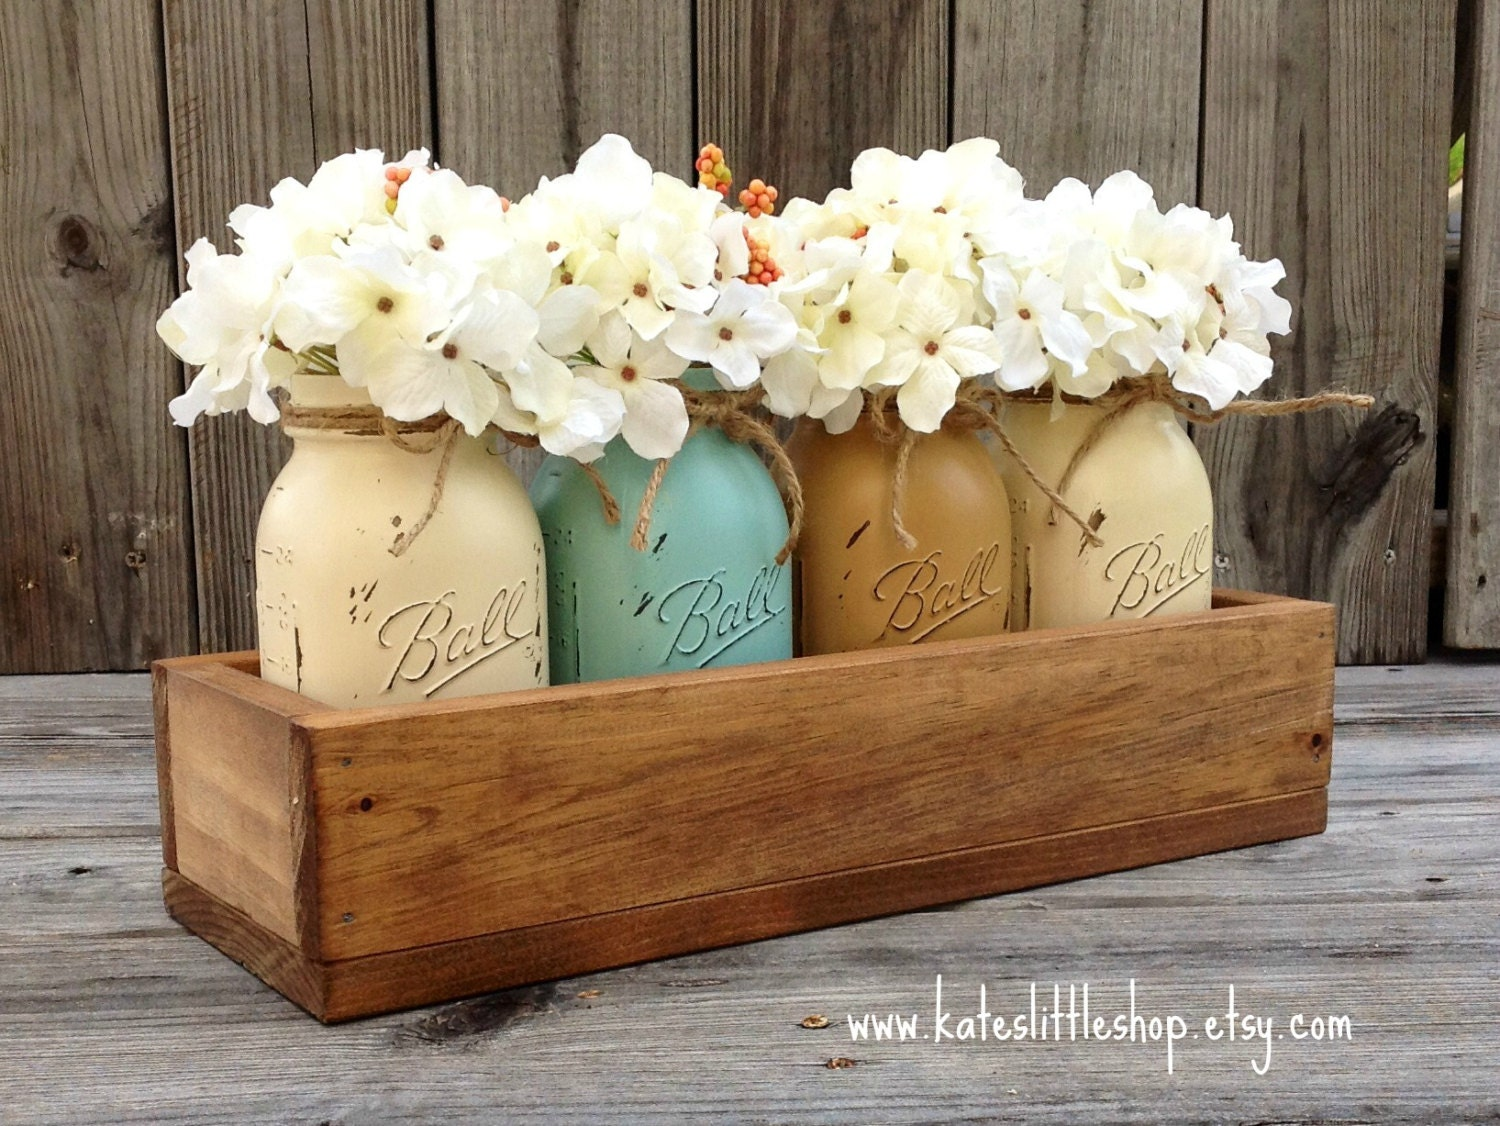 Rustic Planter Box and 4 Painted Mason Jars. Rustic Home